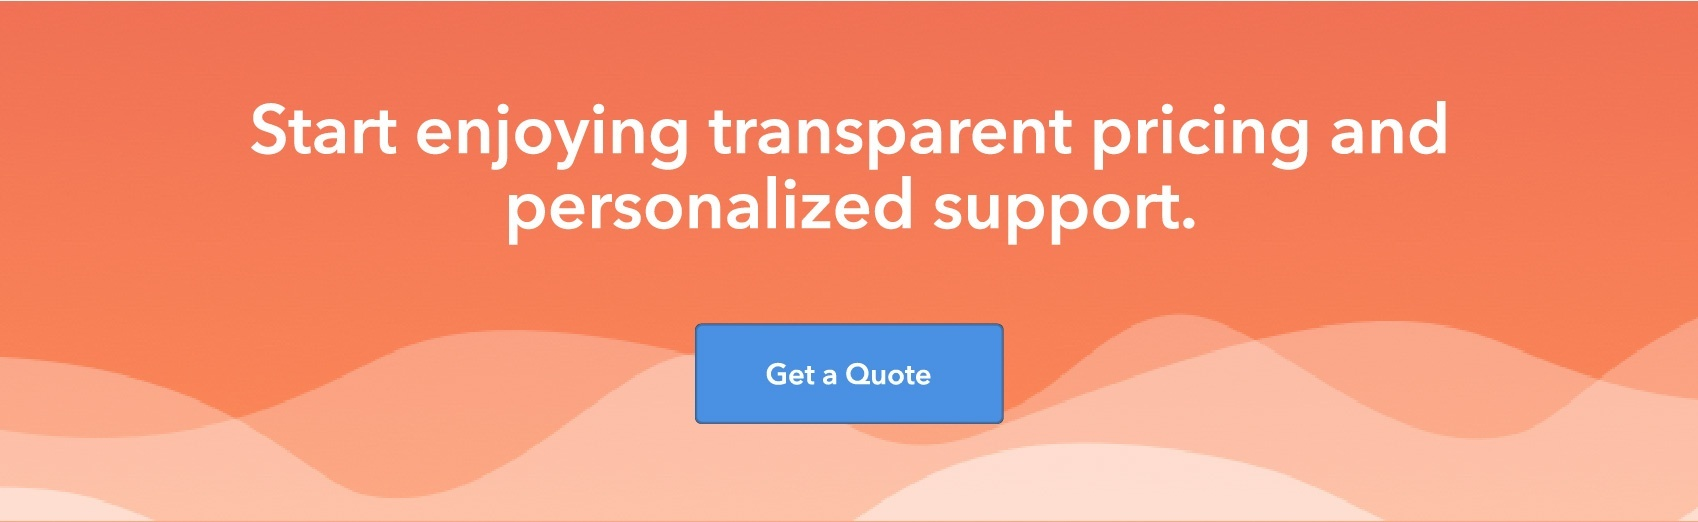 Start enjoying transparent pricing and personalized support. Get a quote.